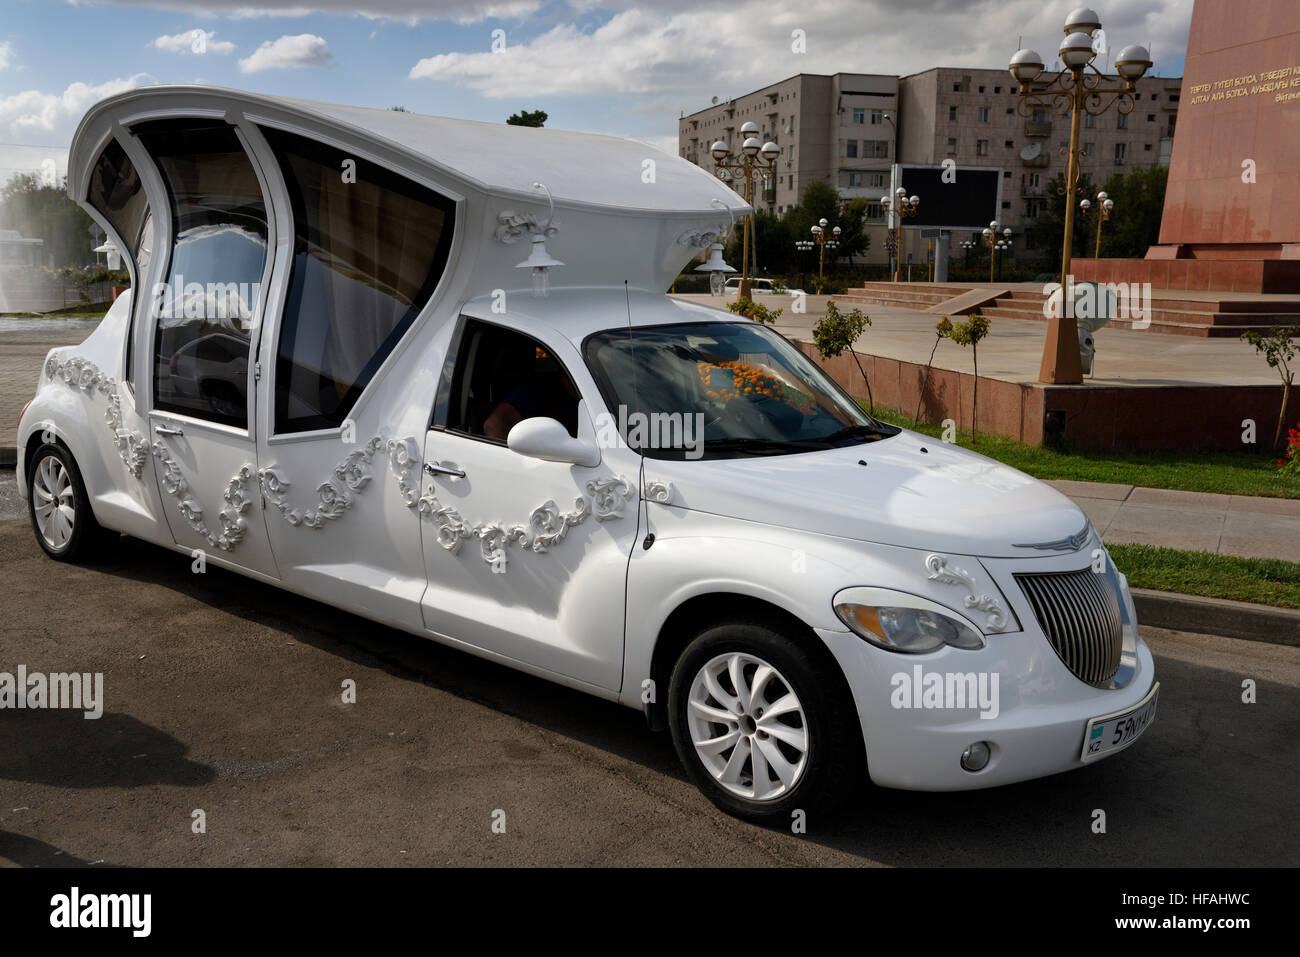 Elaborate limousine made to look like a carriage for a wedding party at Ordabassy square fountain Shymkent Kazakhstan - Stock Image